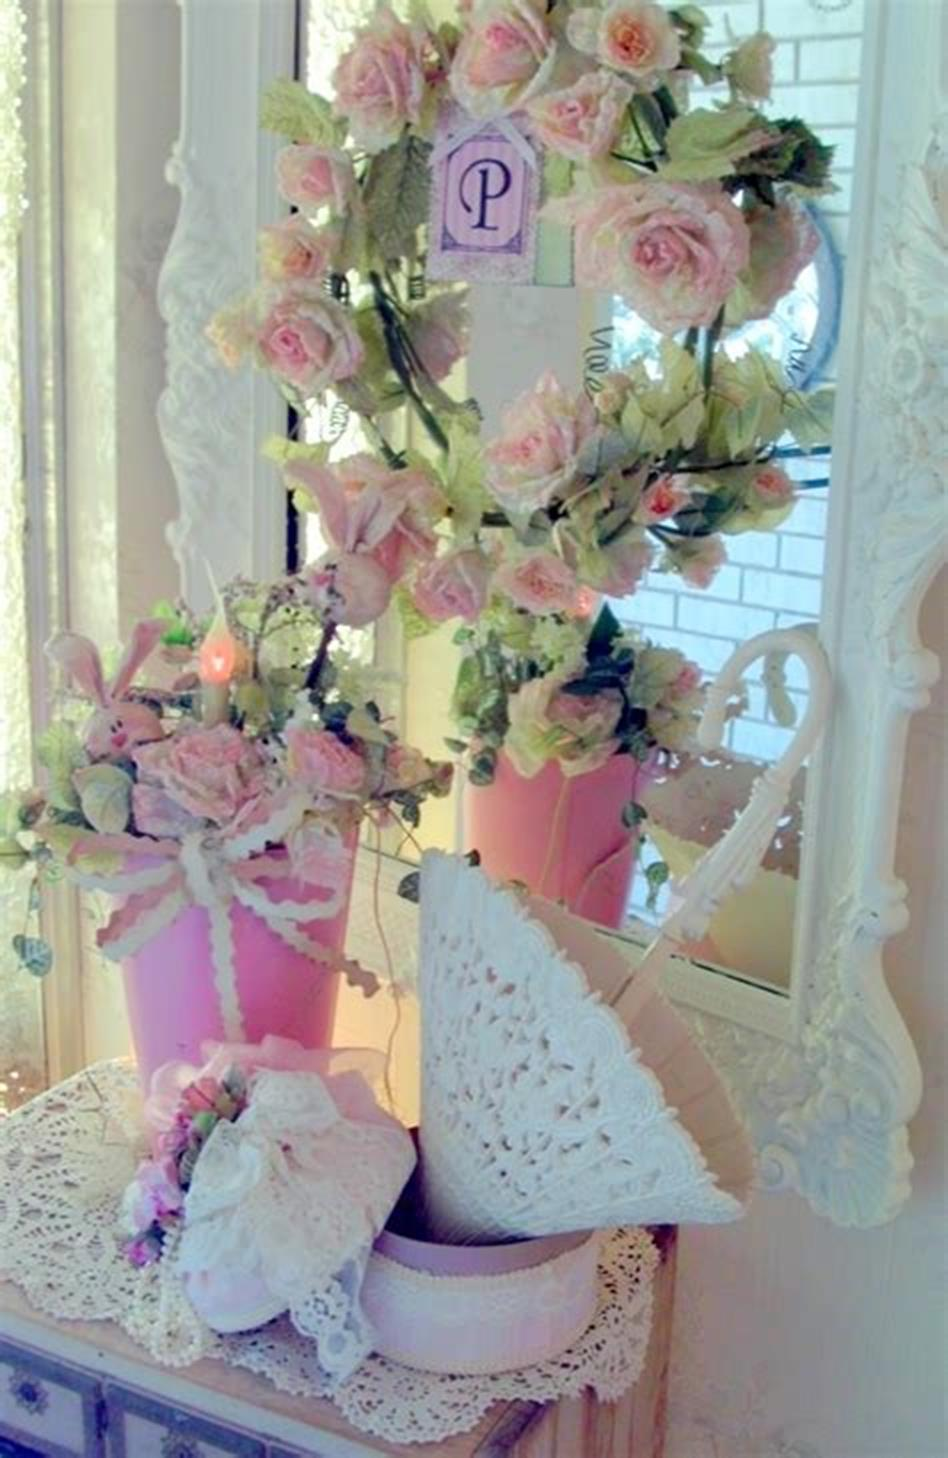 42 DIY Beautiful Vintage Spring Decorations Ideas You Will Love 7